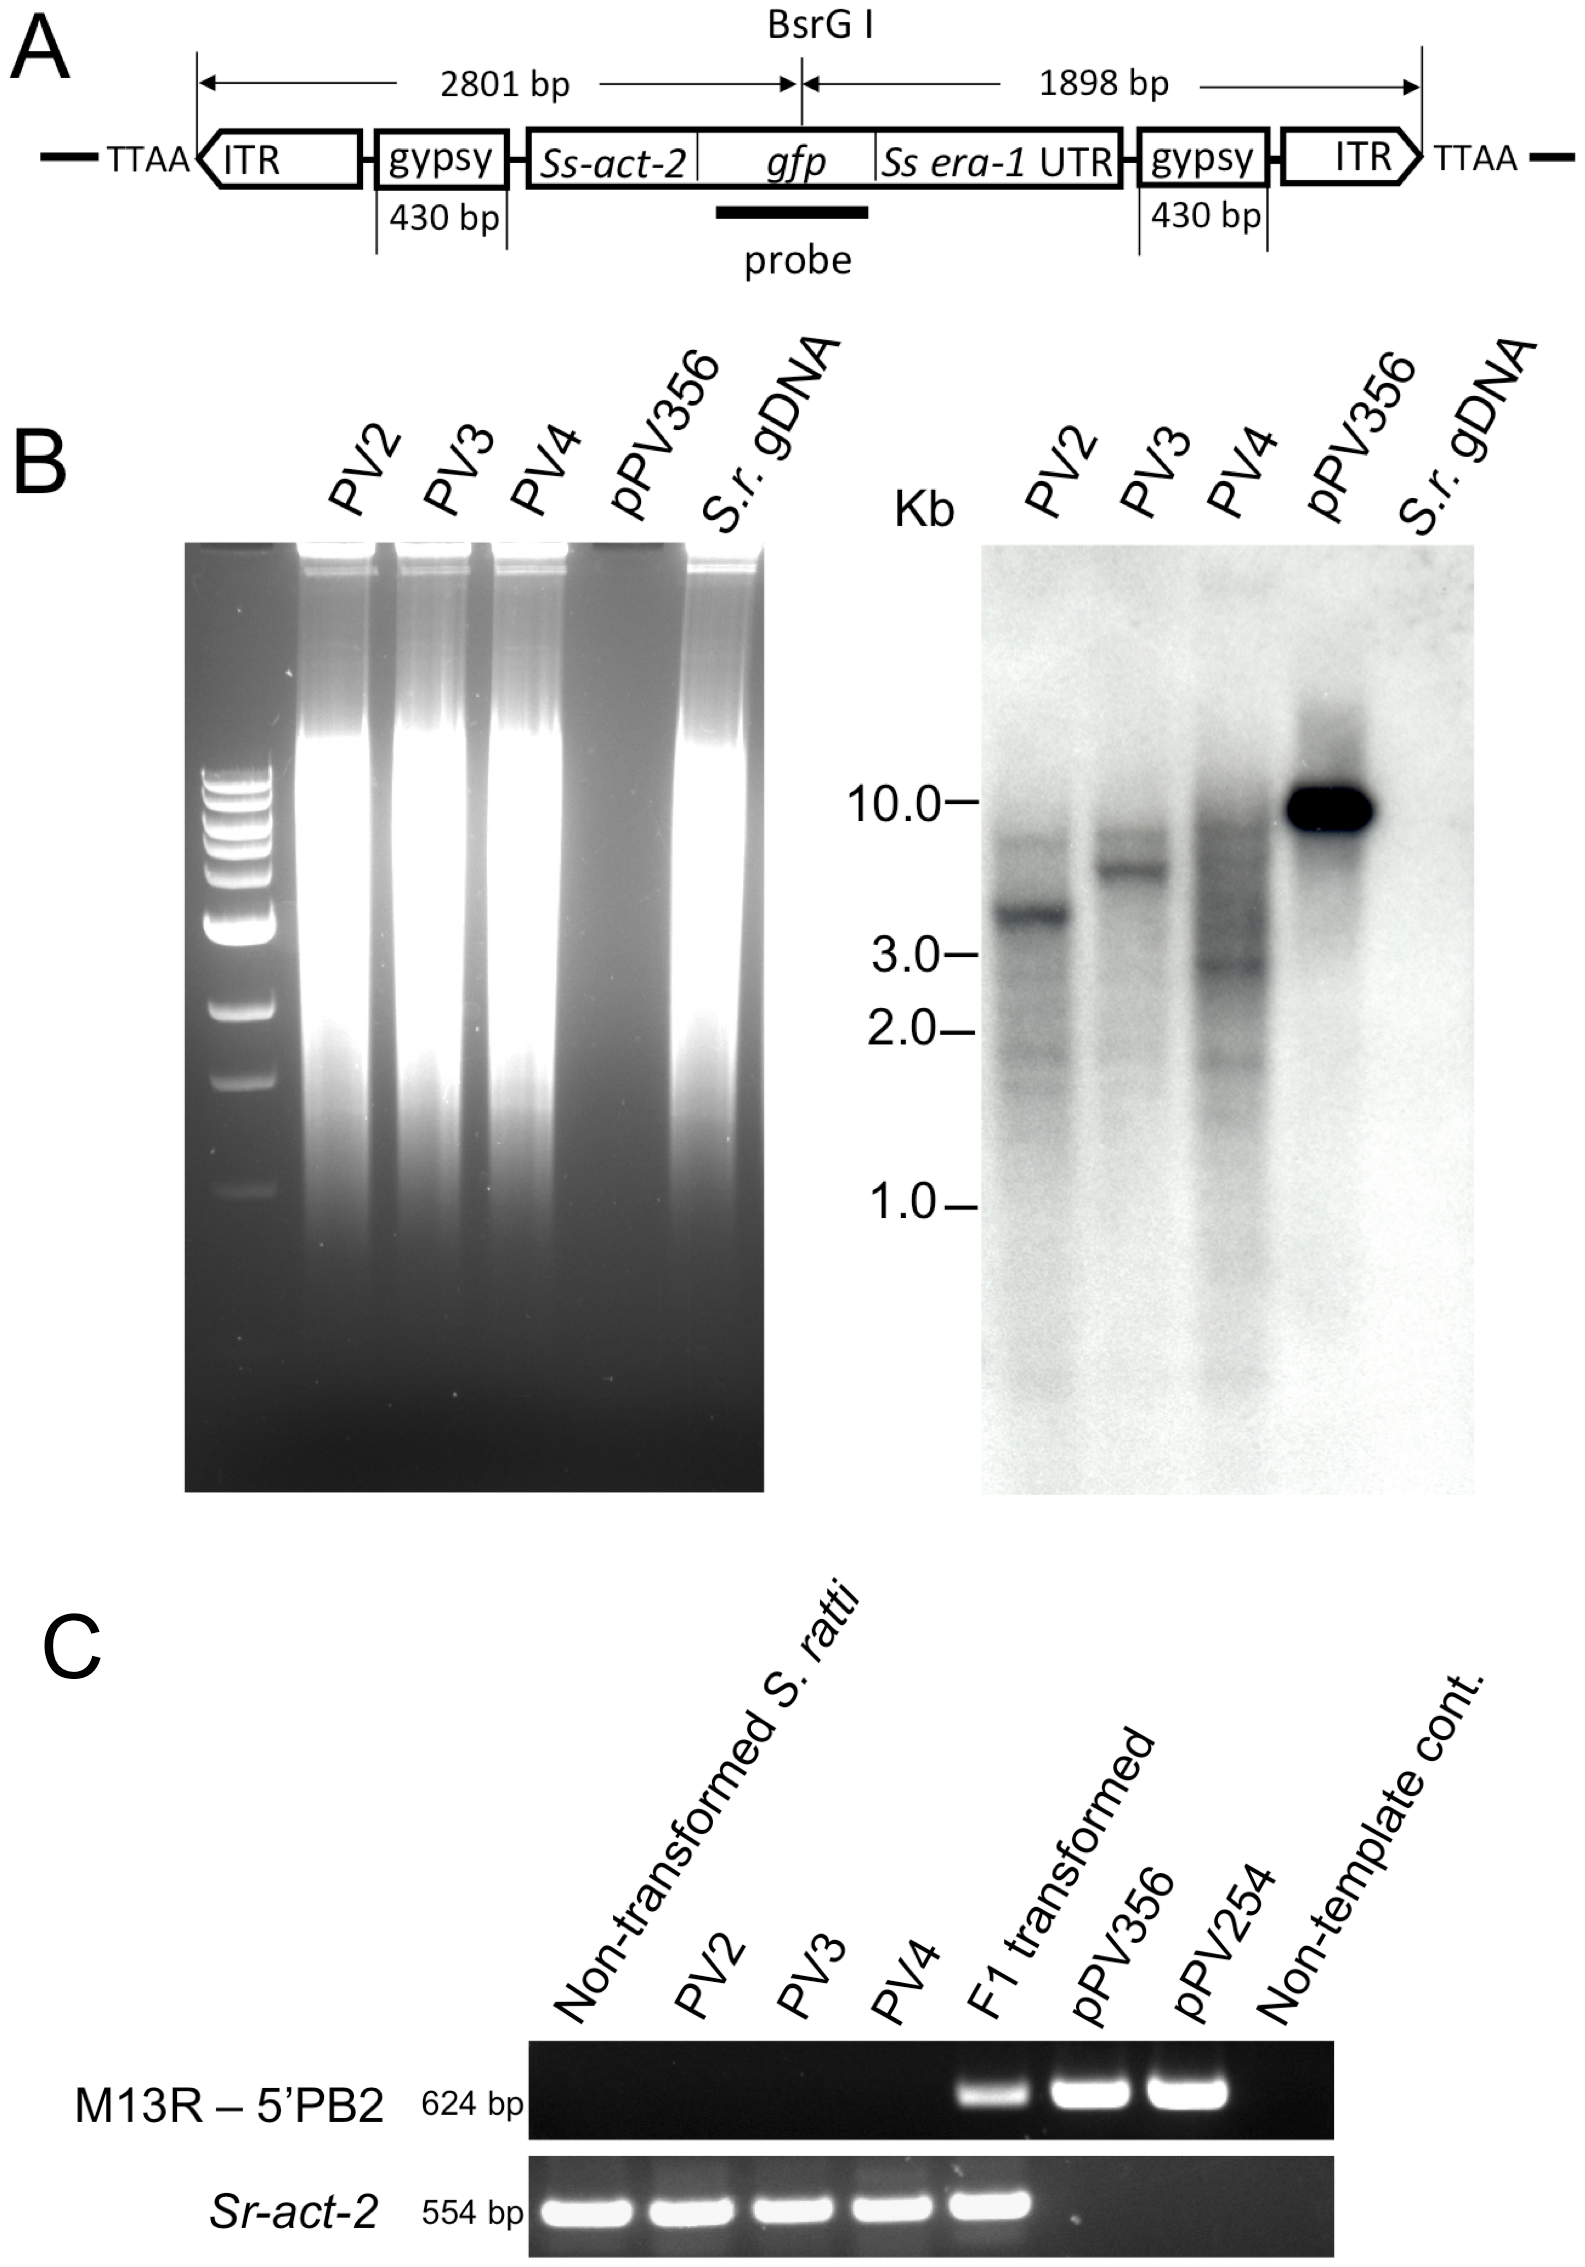 Transgene specific sequences are widely distributed in restriction digests of genomic DNA from three stable lines of transgenic <i>S. ratti</i>.